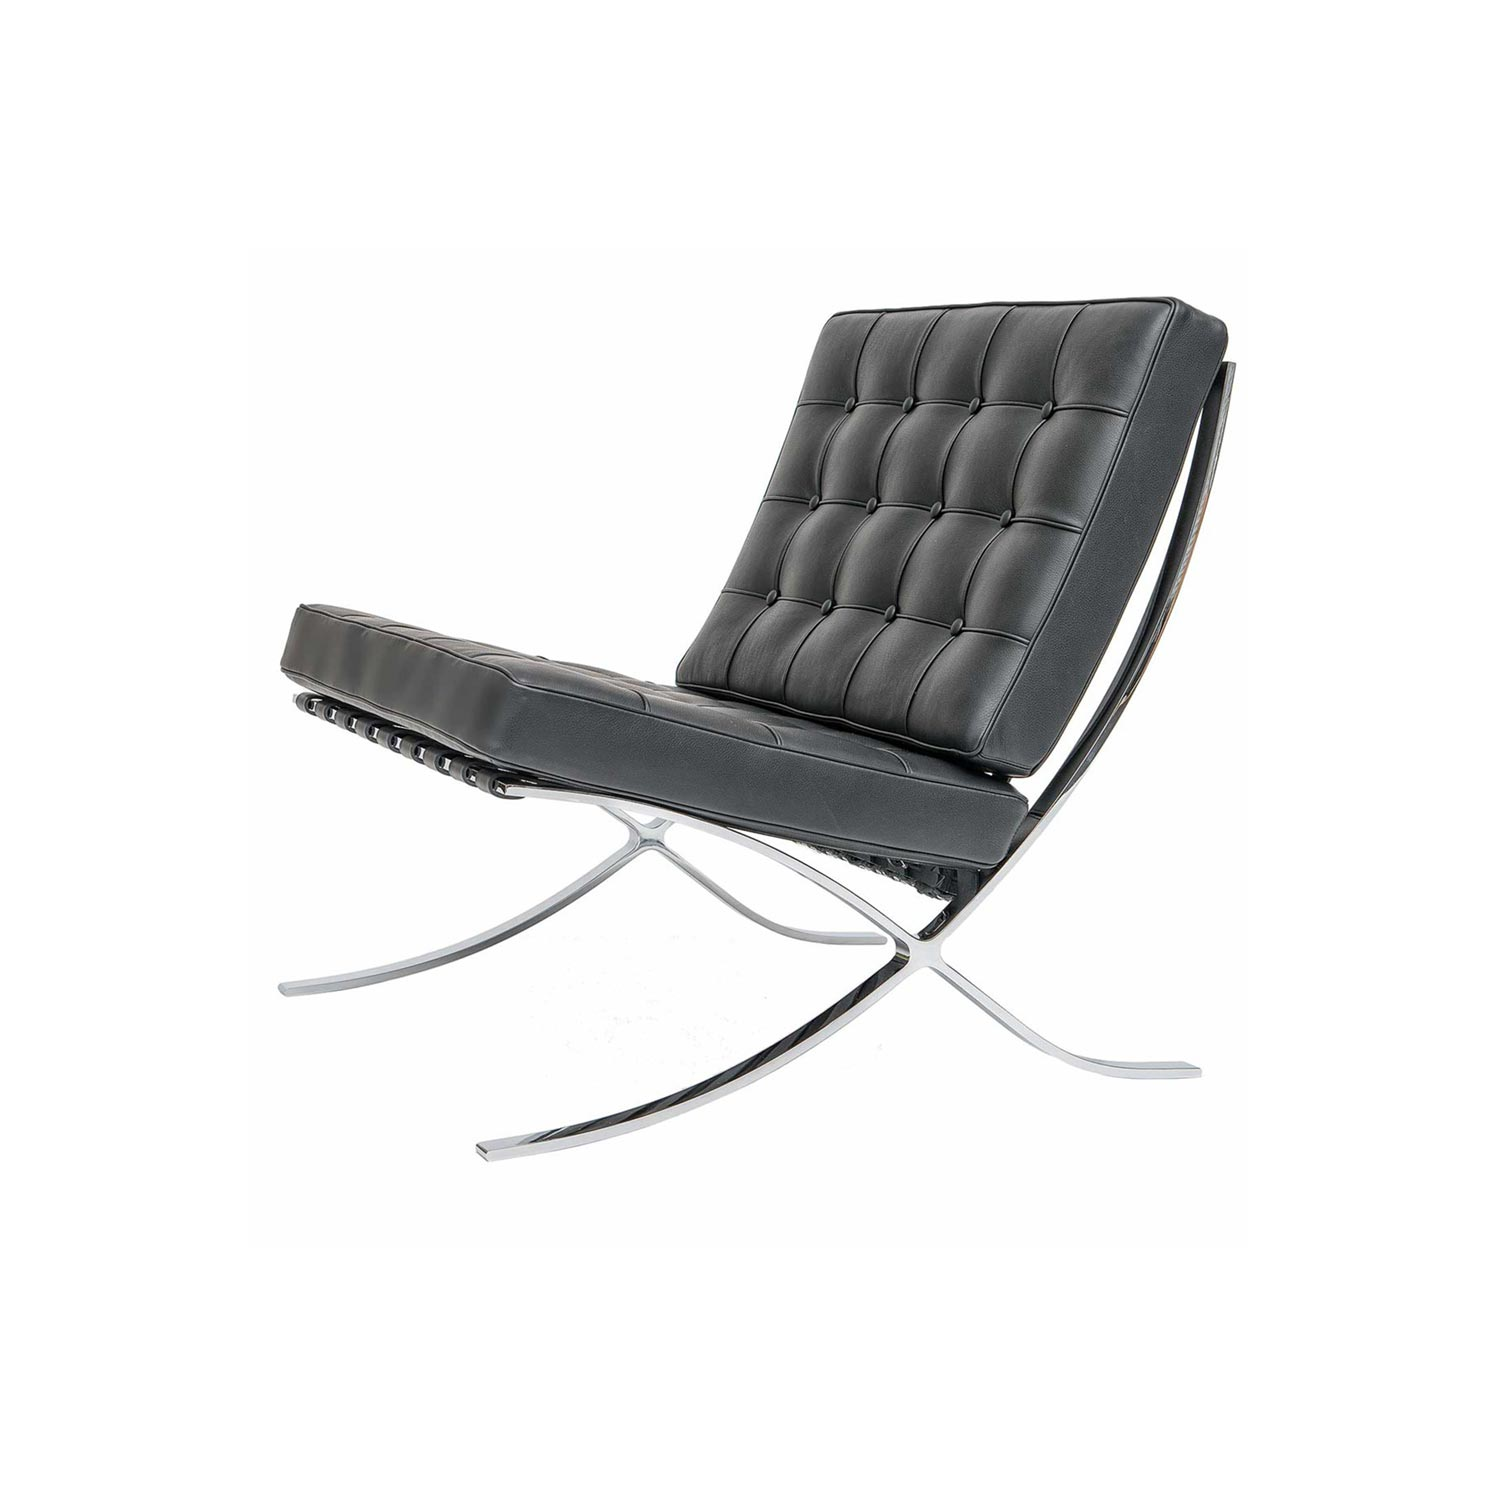 Barcelona style chair by mies van der rohe steelform - Mies van der rohe muebles ...